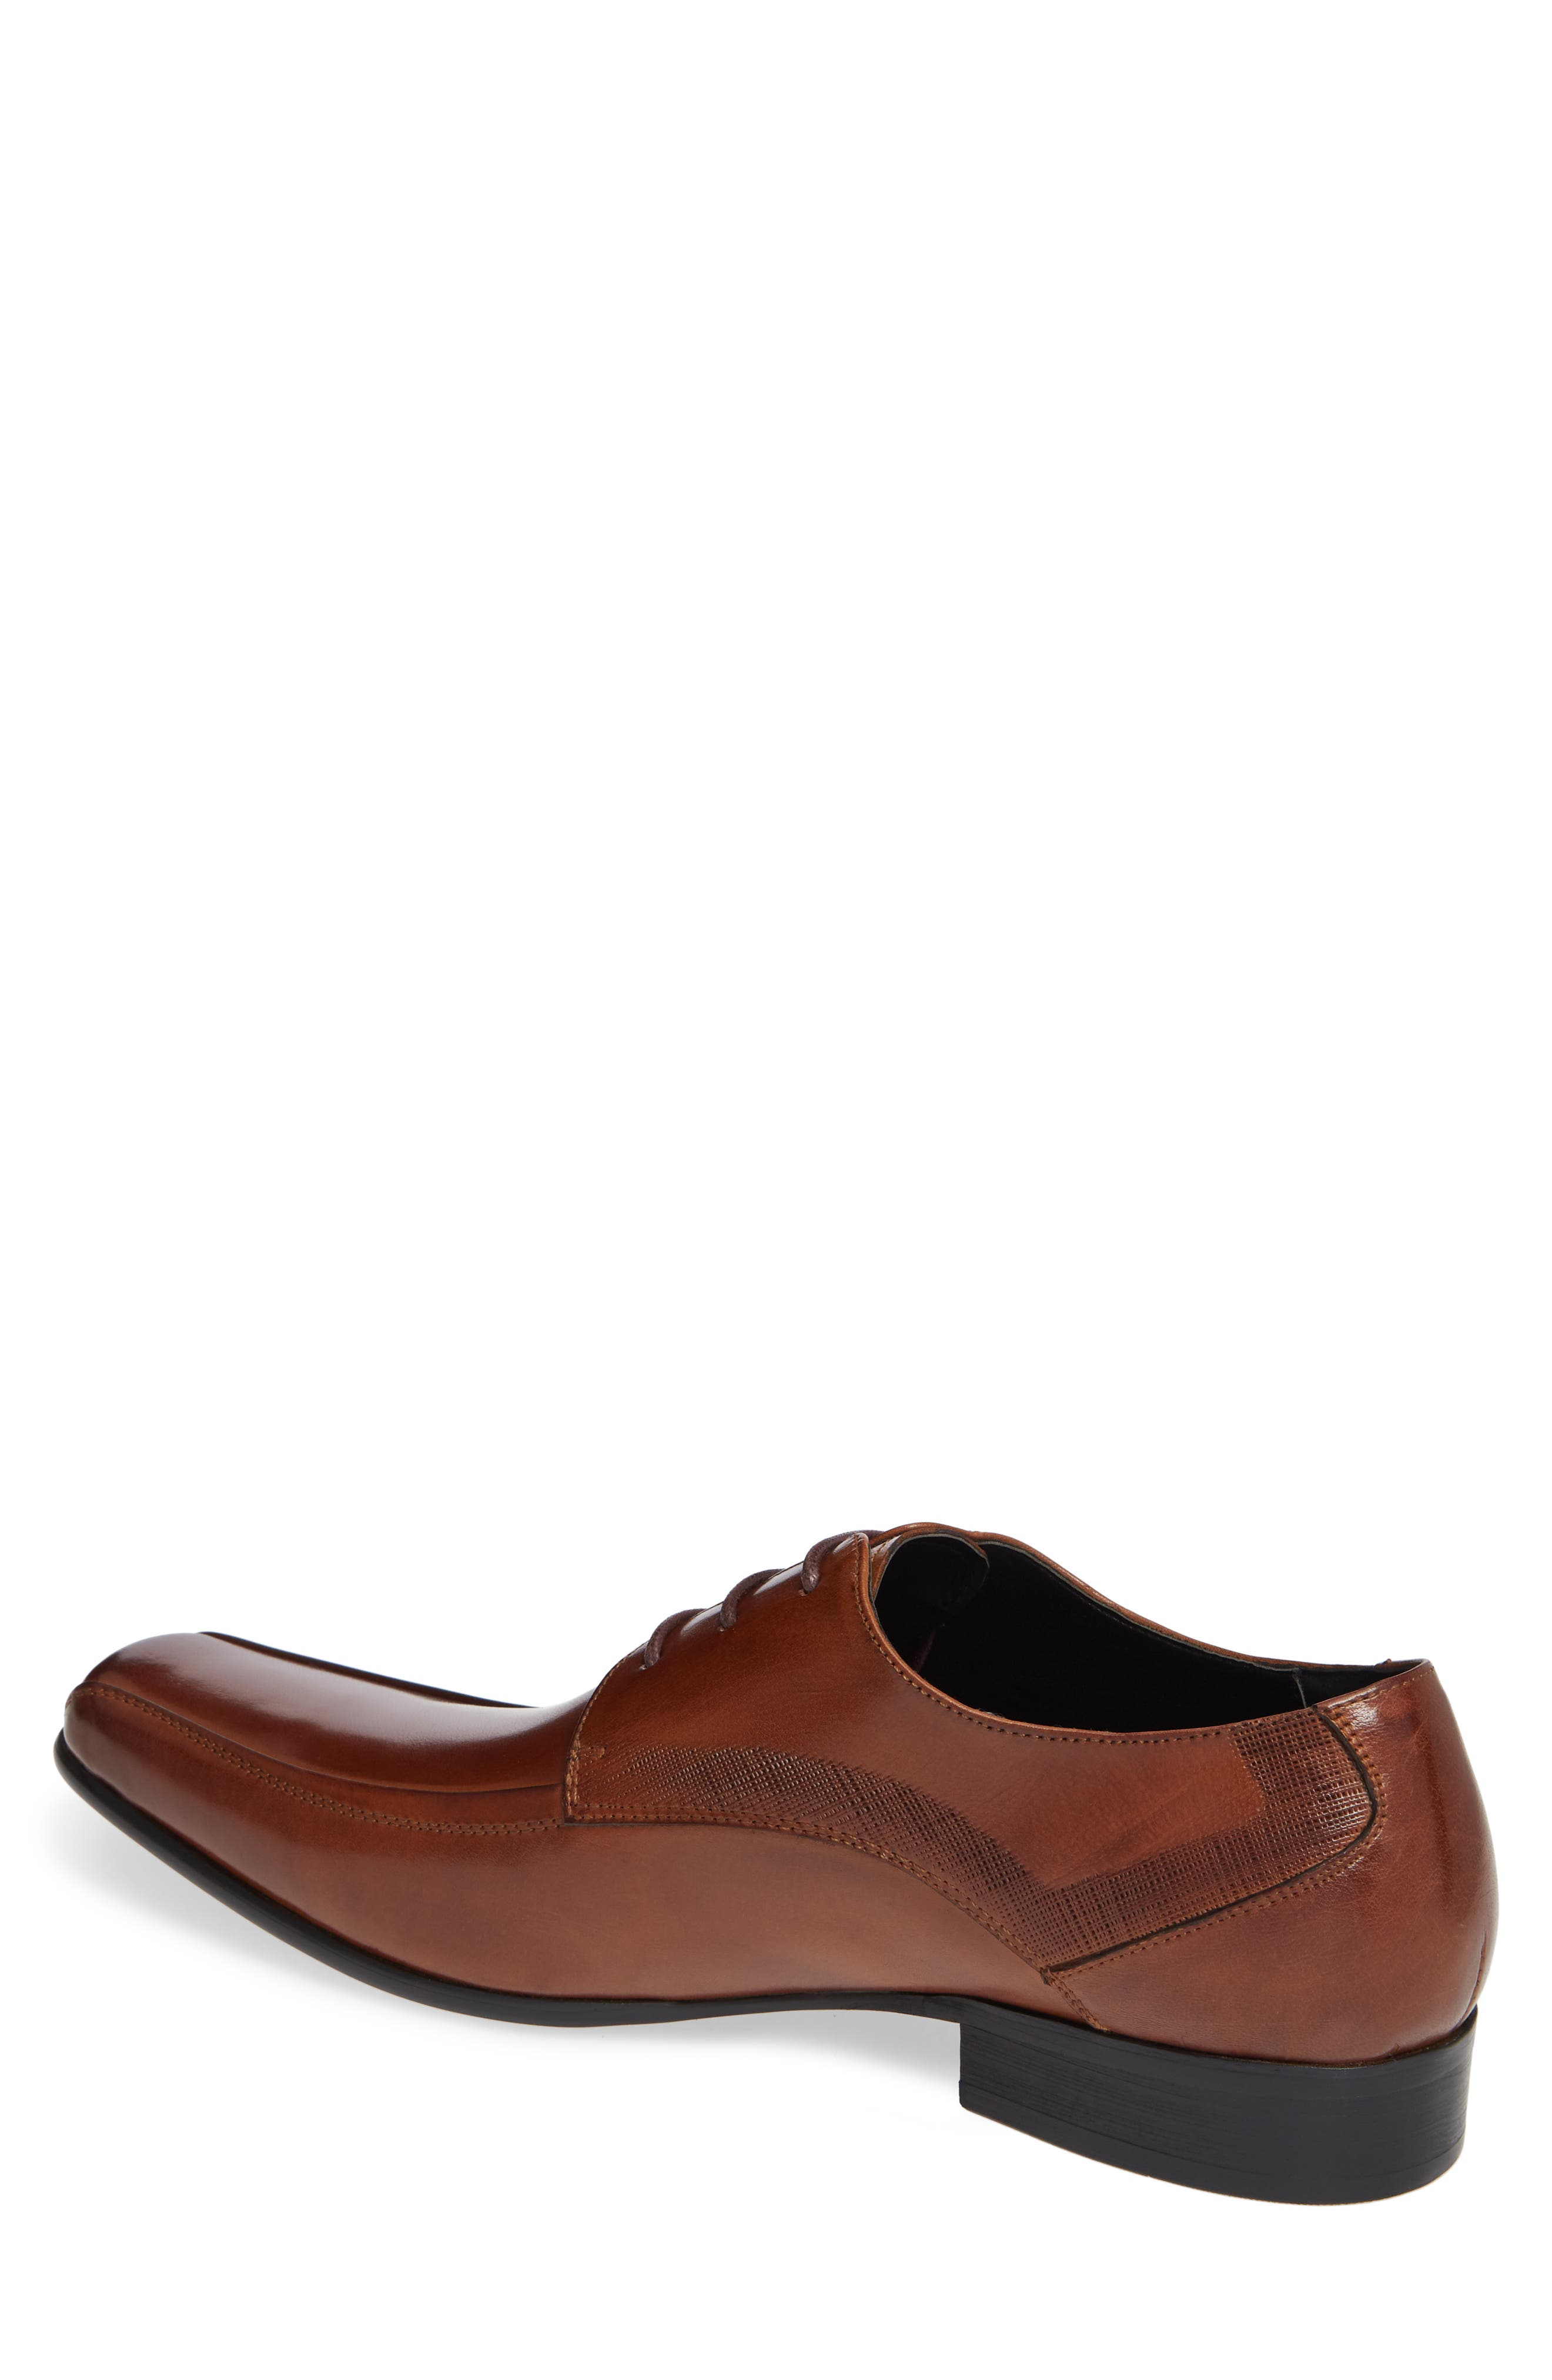 KENNETH COLE NEW YORK, Magic Place Bike Toe Derby, Alternate thumbnail 2, color, COGNAC LEATHER